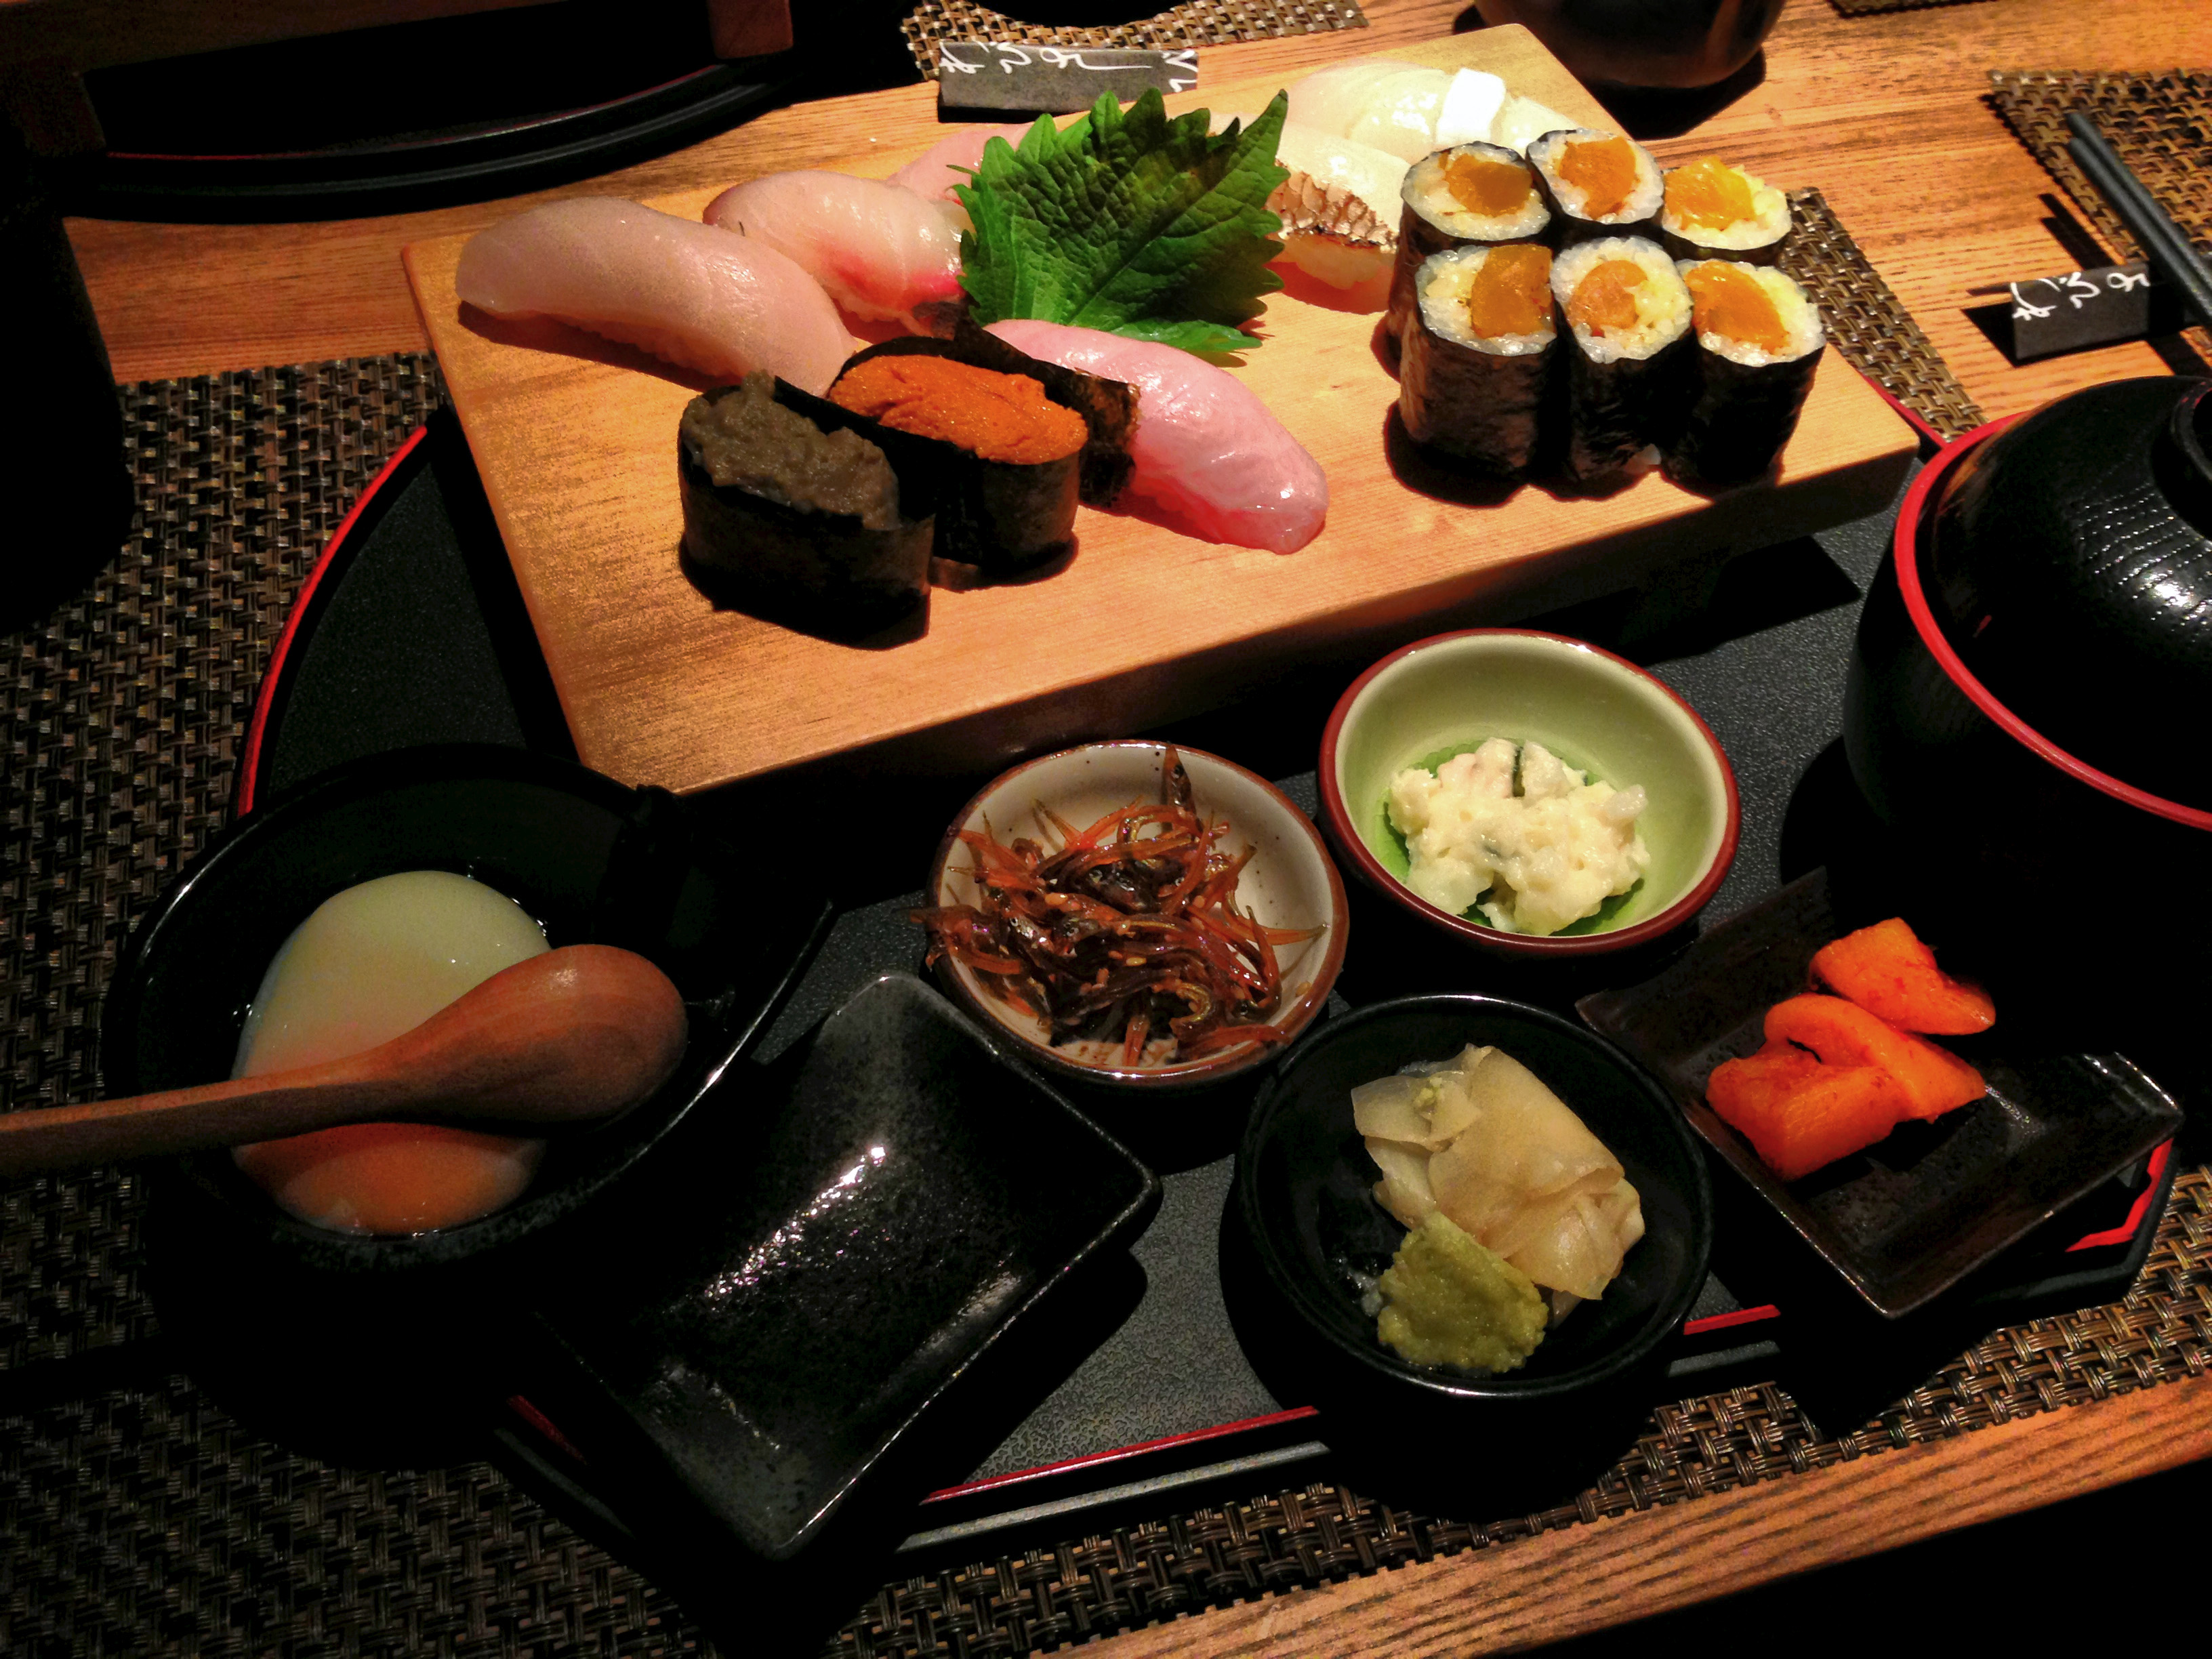 New Lunches in Wabi Sabi. Overview